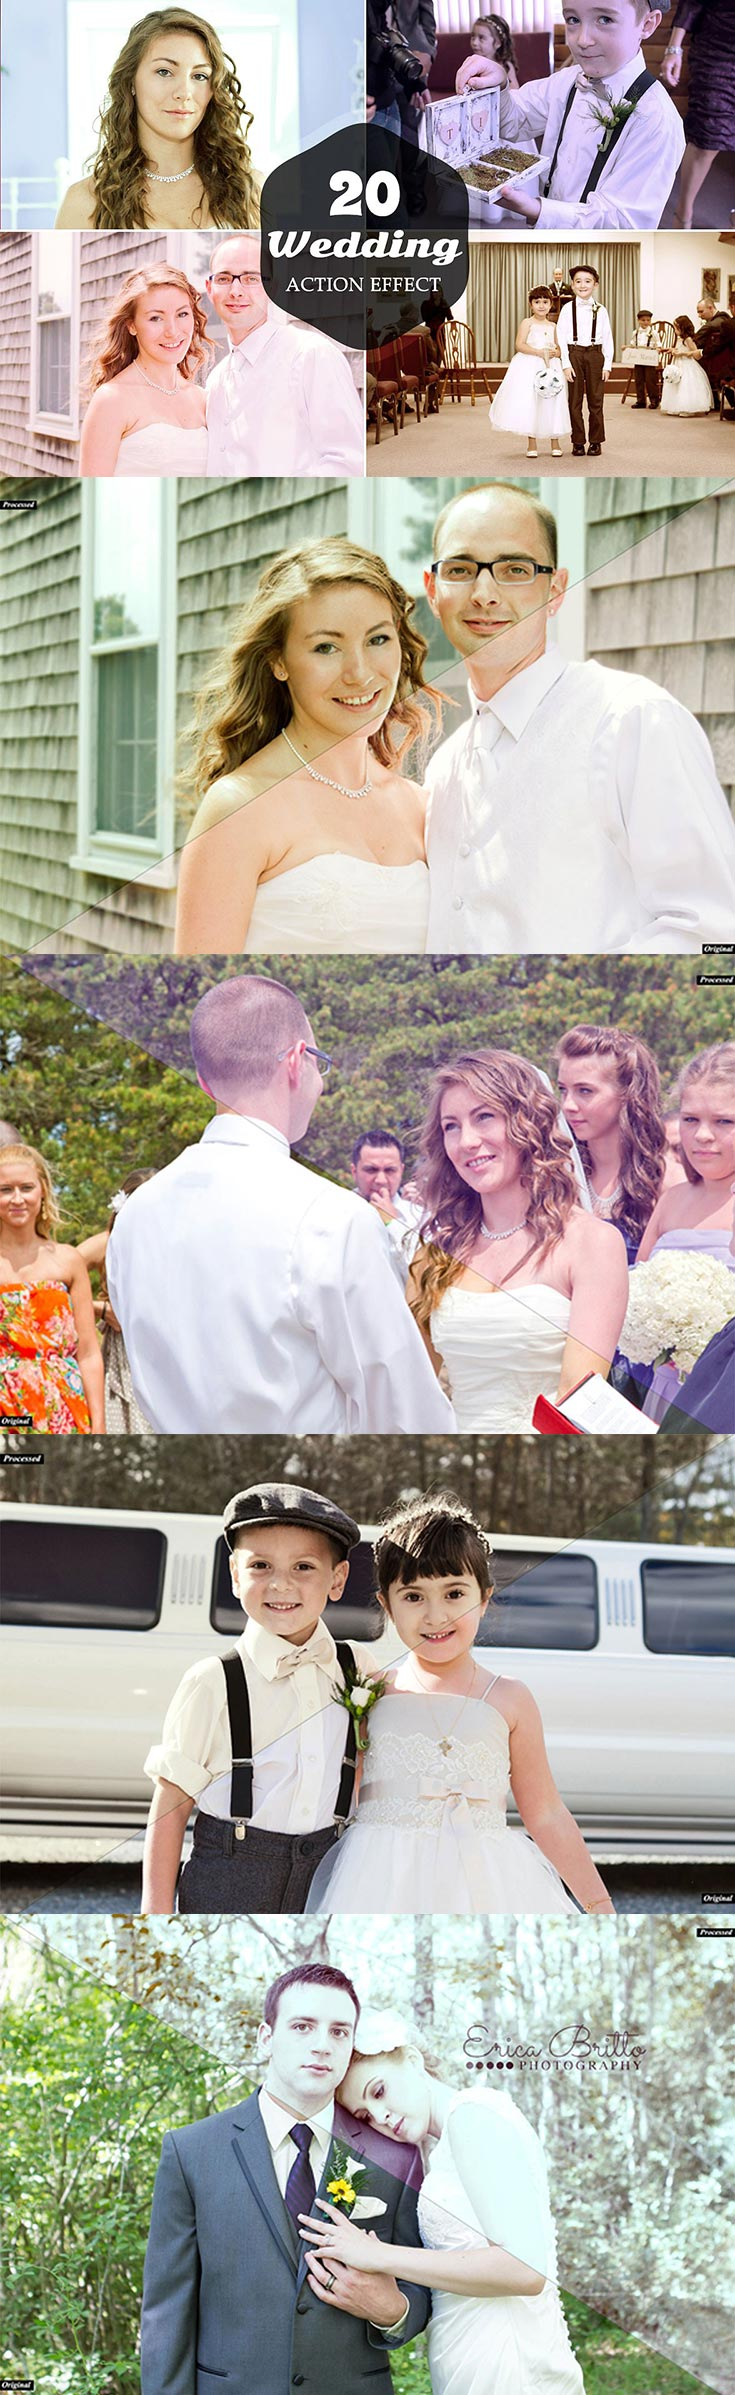 20 Free Wedding Photoshop Actions Ver. 1